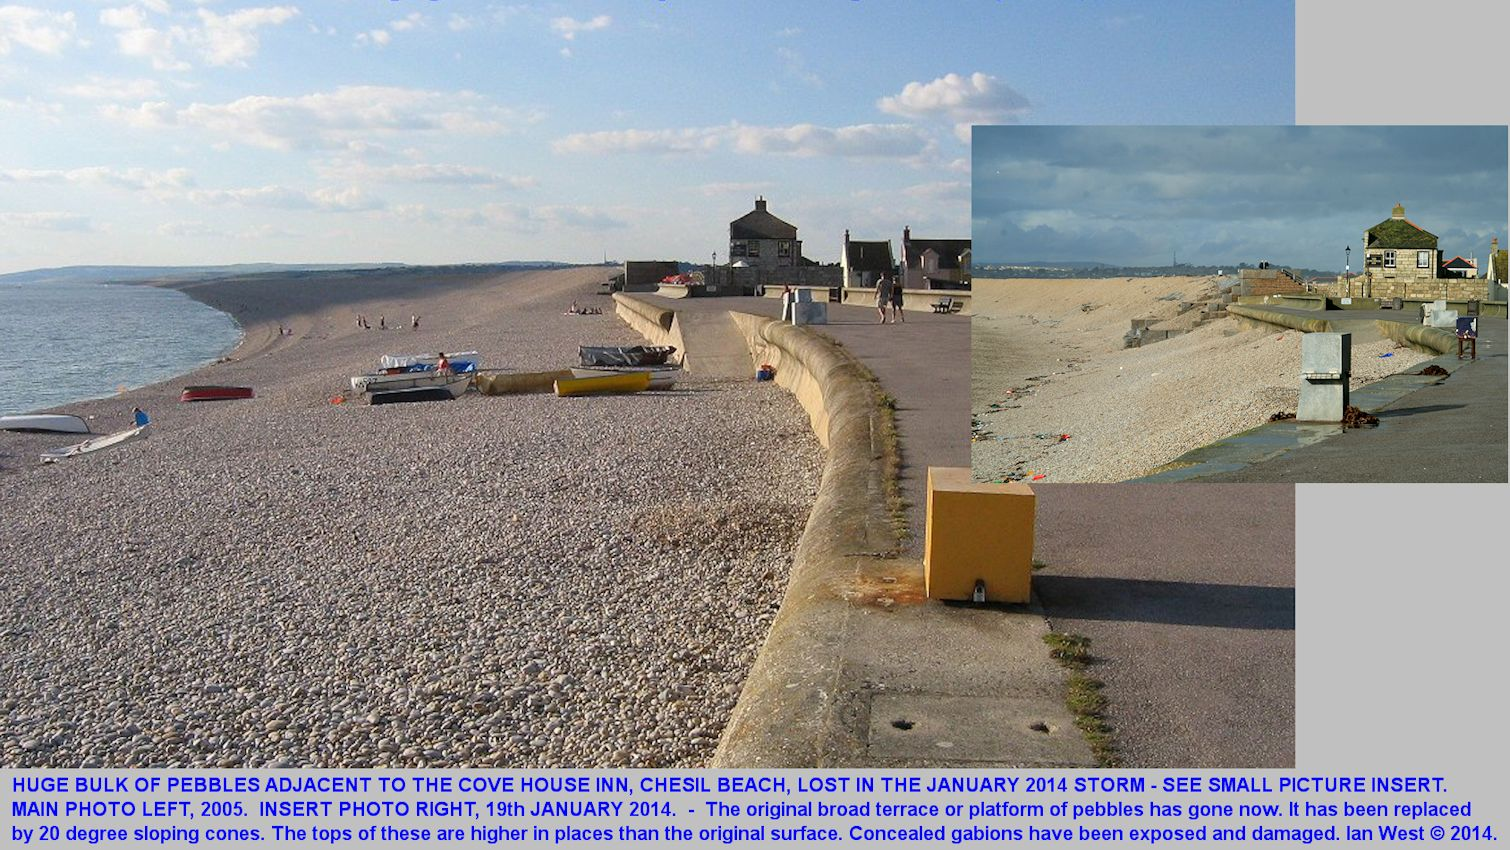 Comparison of the Chesil Beach at the Cove House Inn in 2005 and January 2014, oblique views from the promenade, Chesil Cove, Dorset